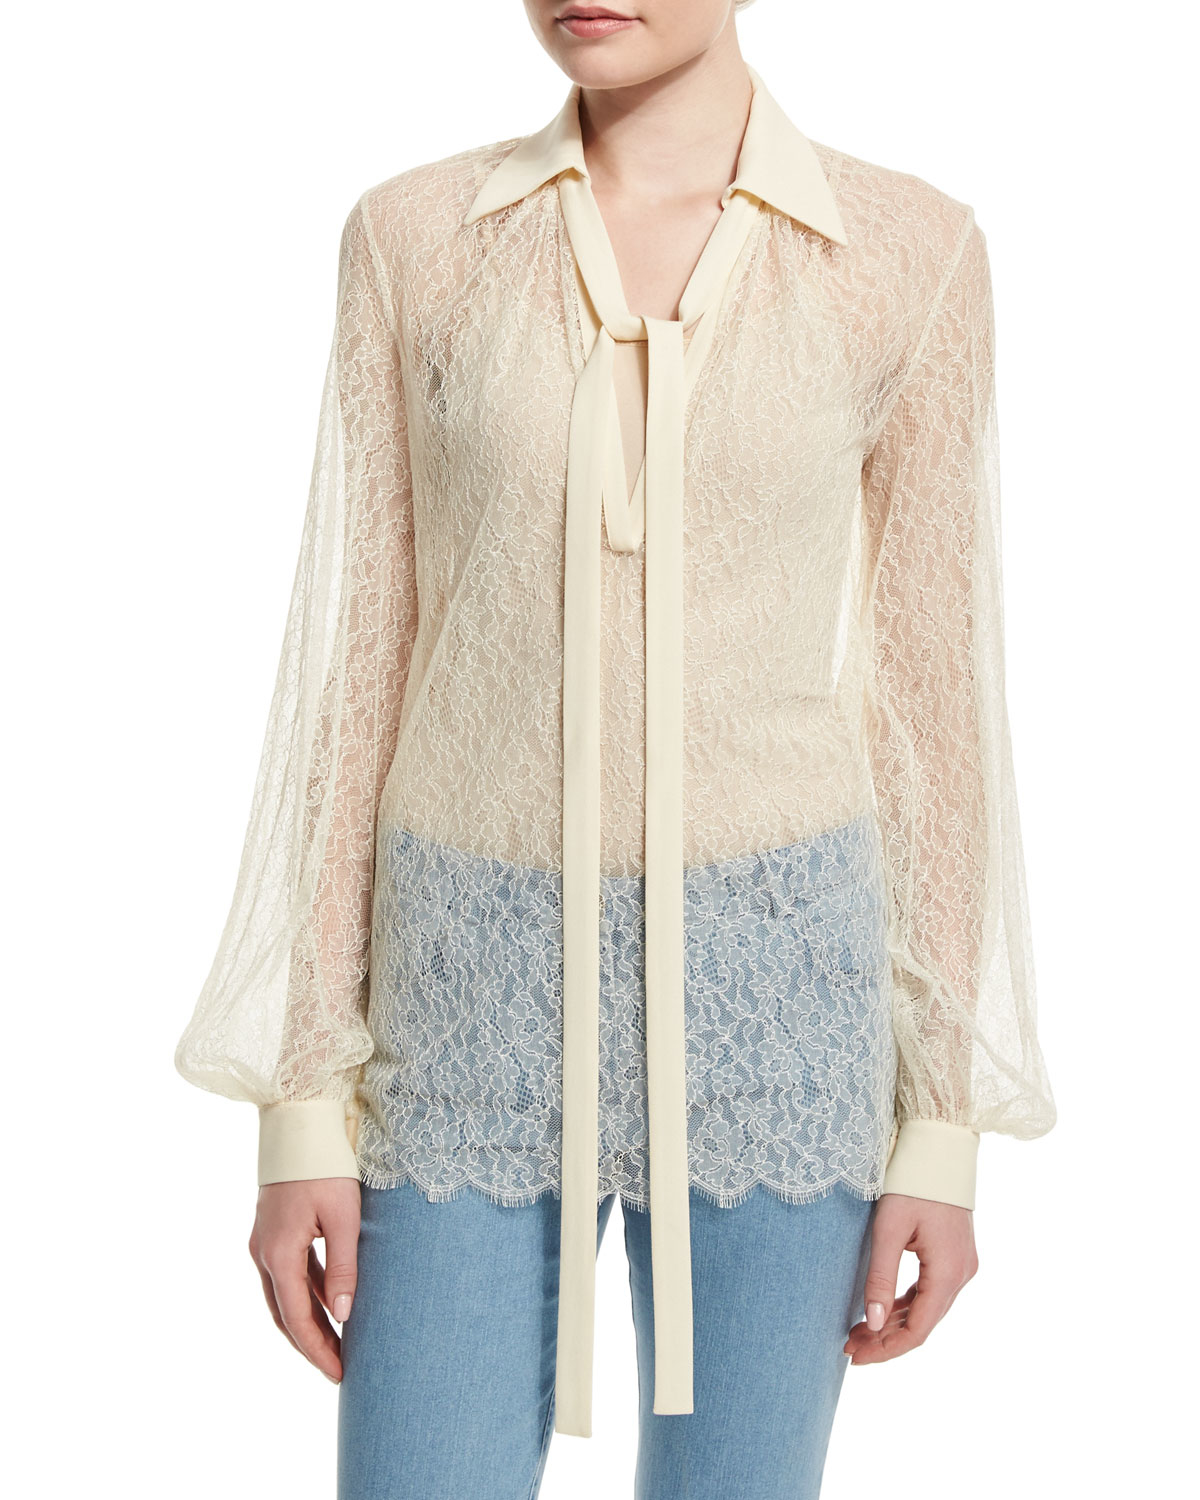 e15352628977a Lyst - Michael Kors Long-sleeve Self-tie Sheer Lace Blouse in Natural